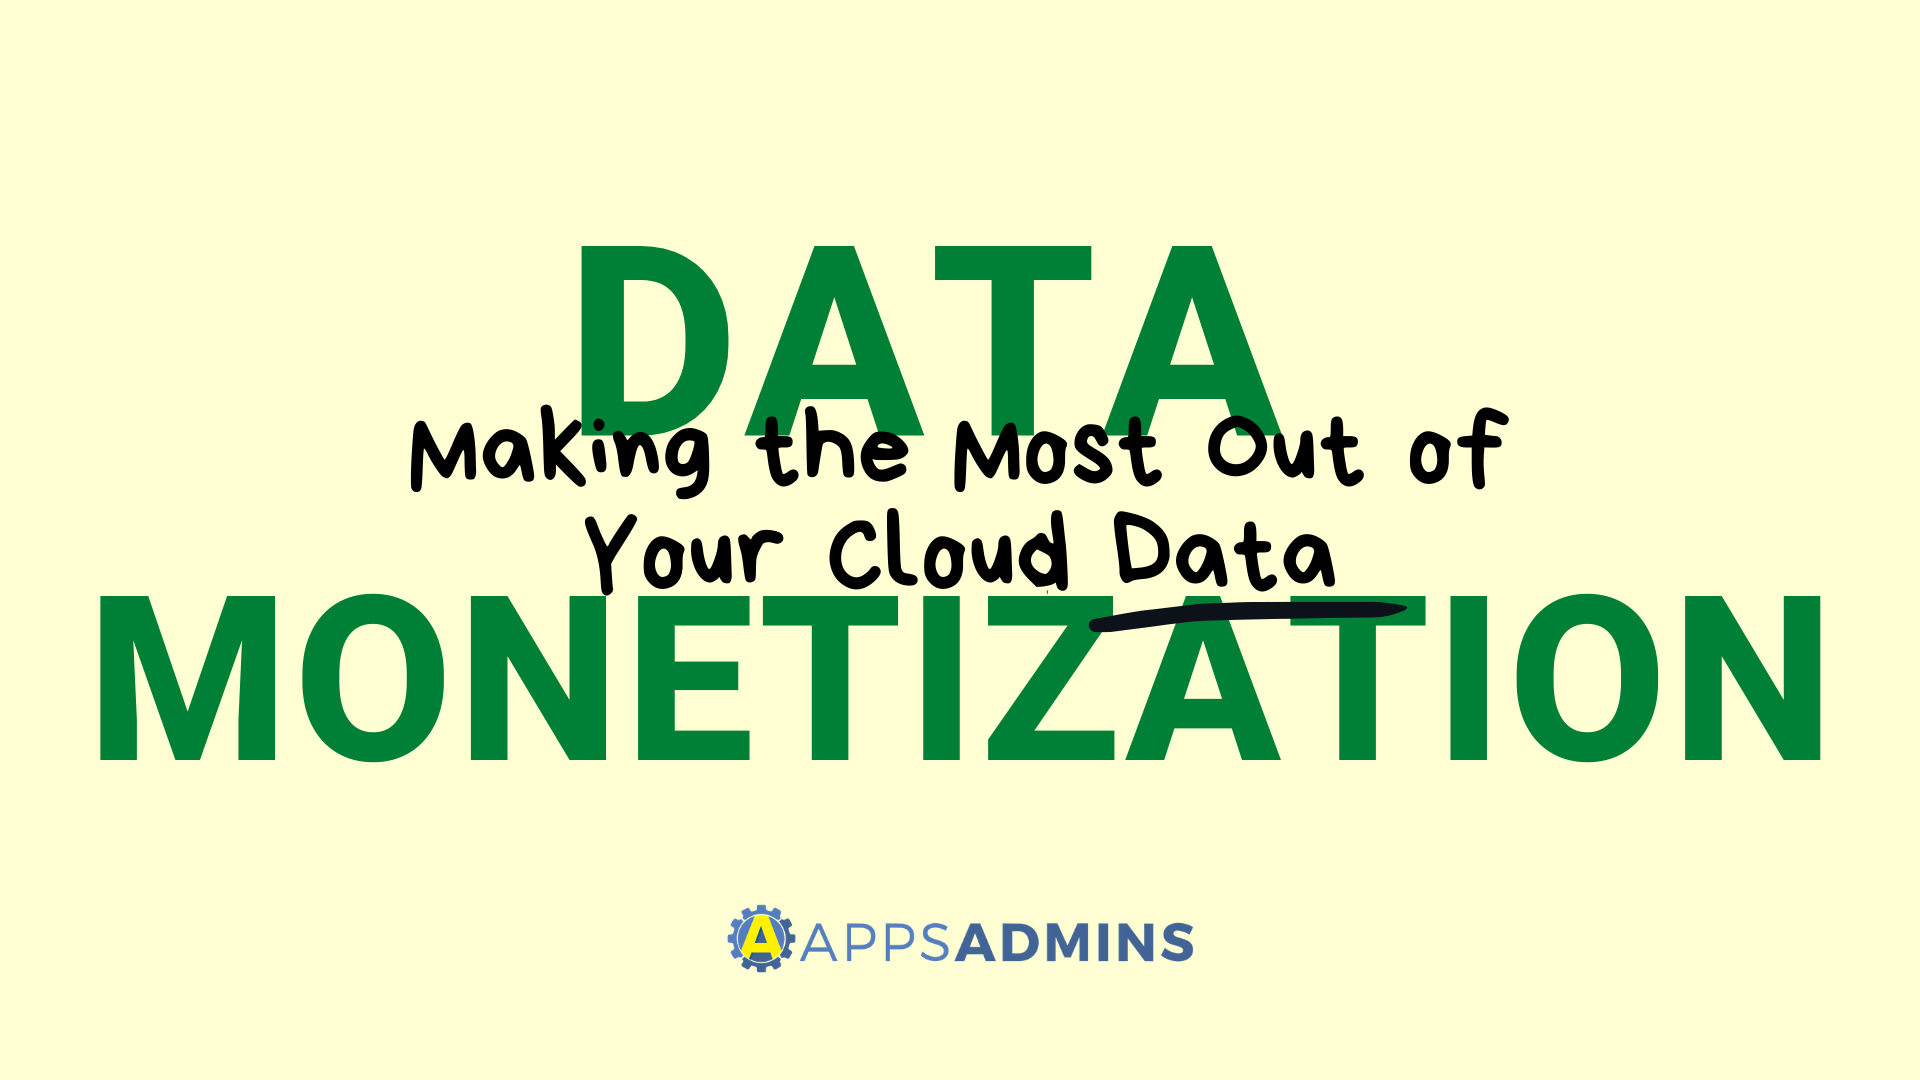 Making the Most Out of Your Cloud Data